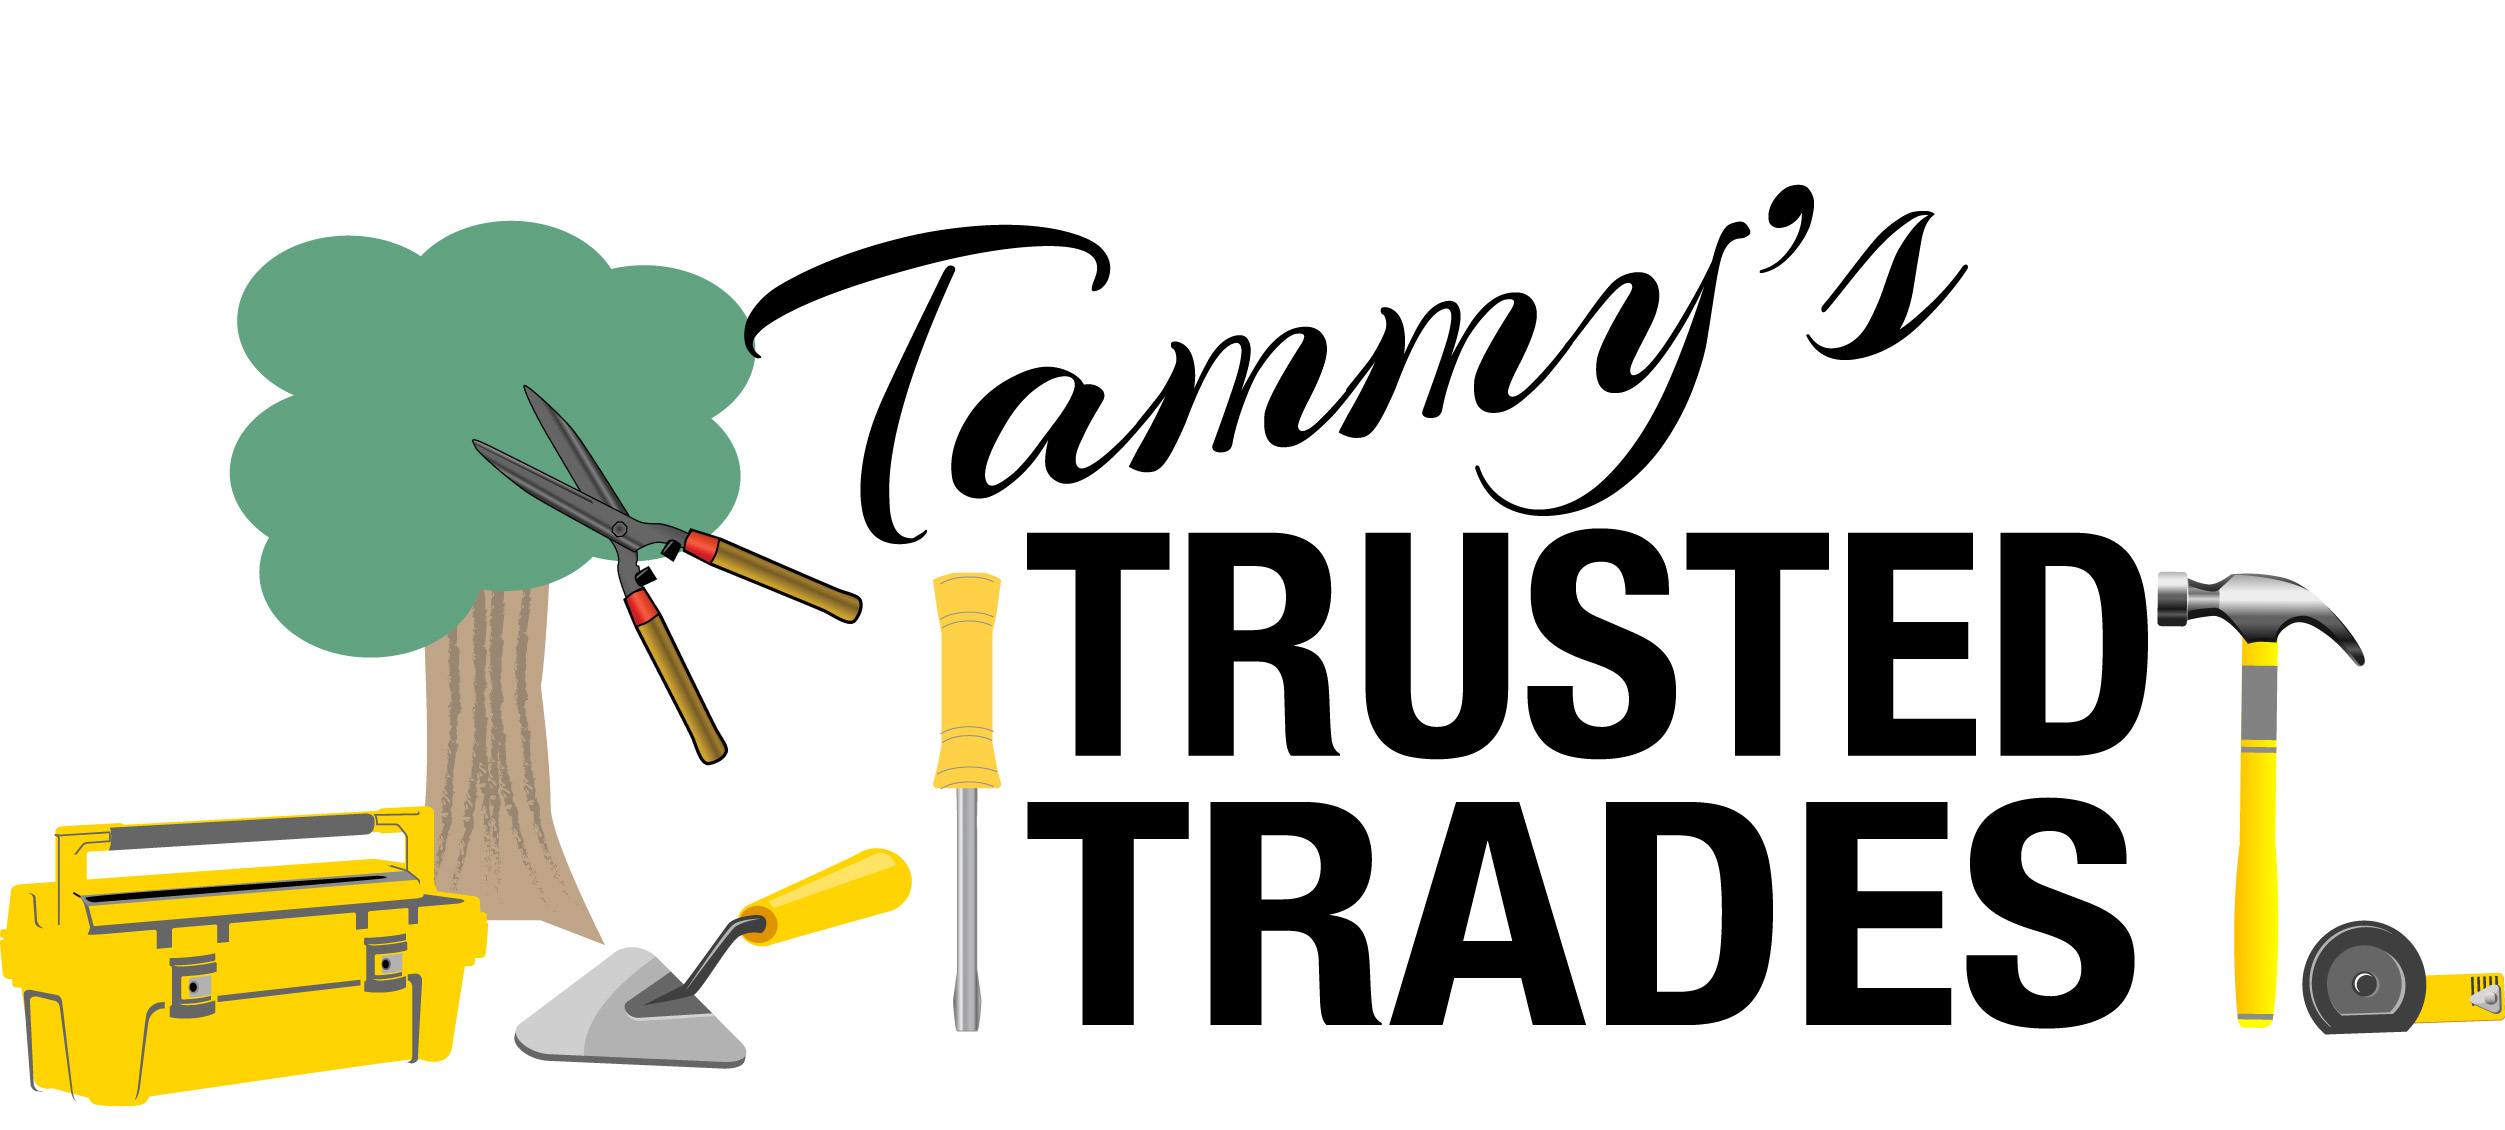 Image: Home Improvement Tools, Text: Tammy's Trusted Trades